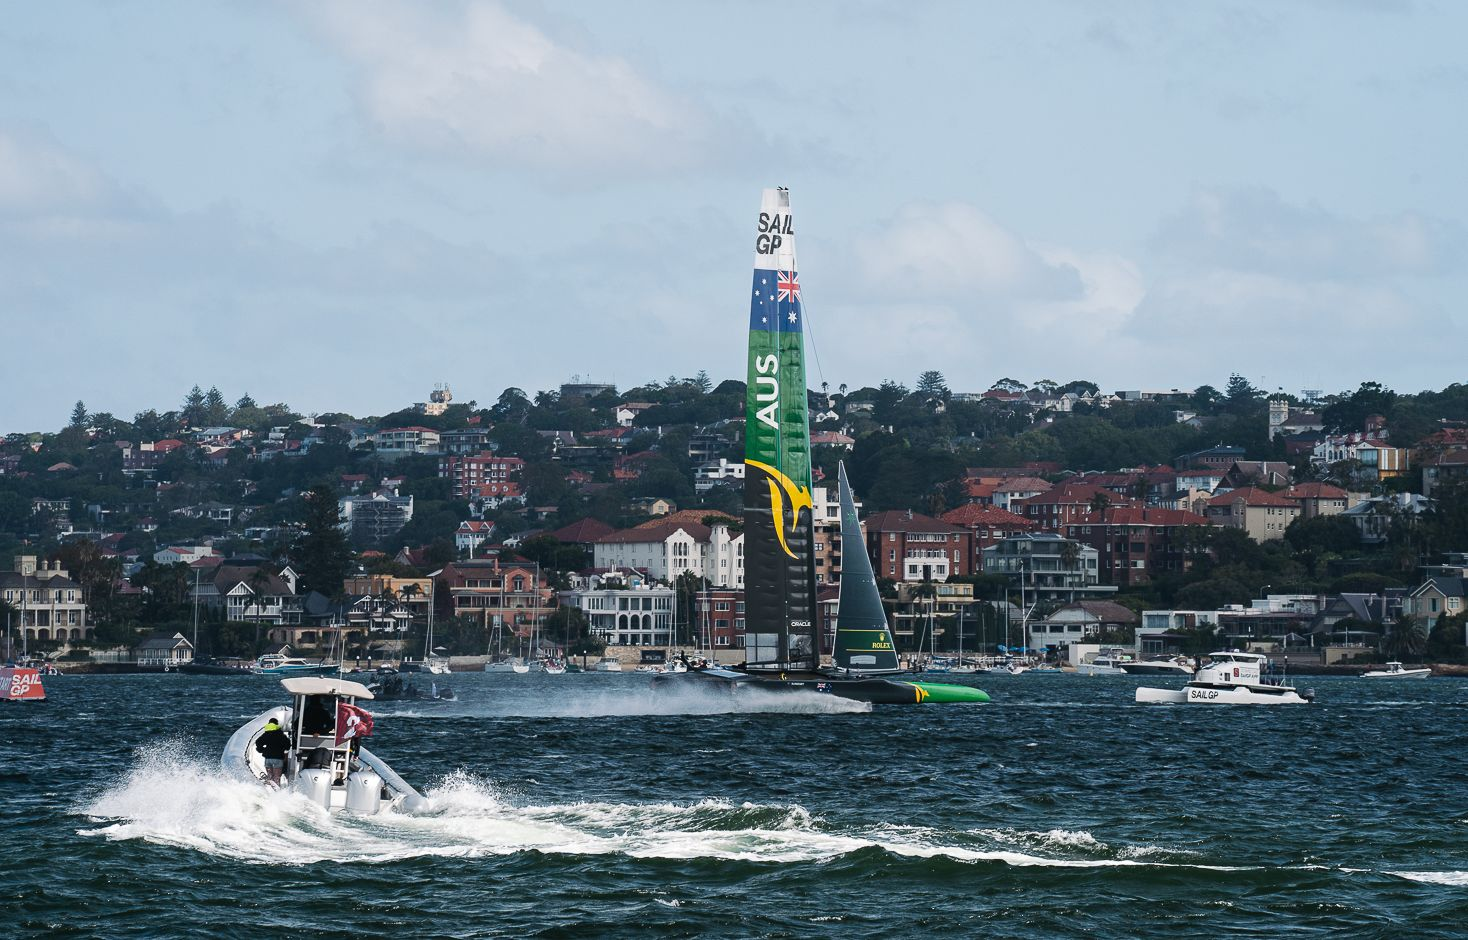 Ocean Club – All the action from Sydney SailGP 2020